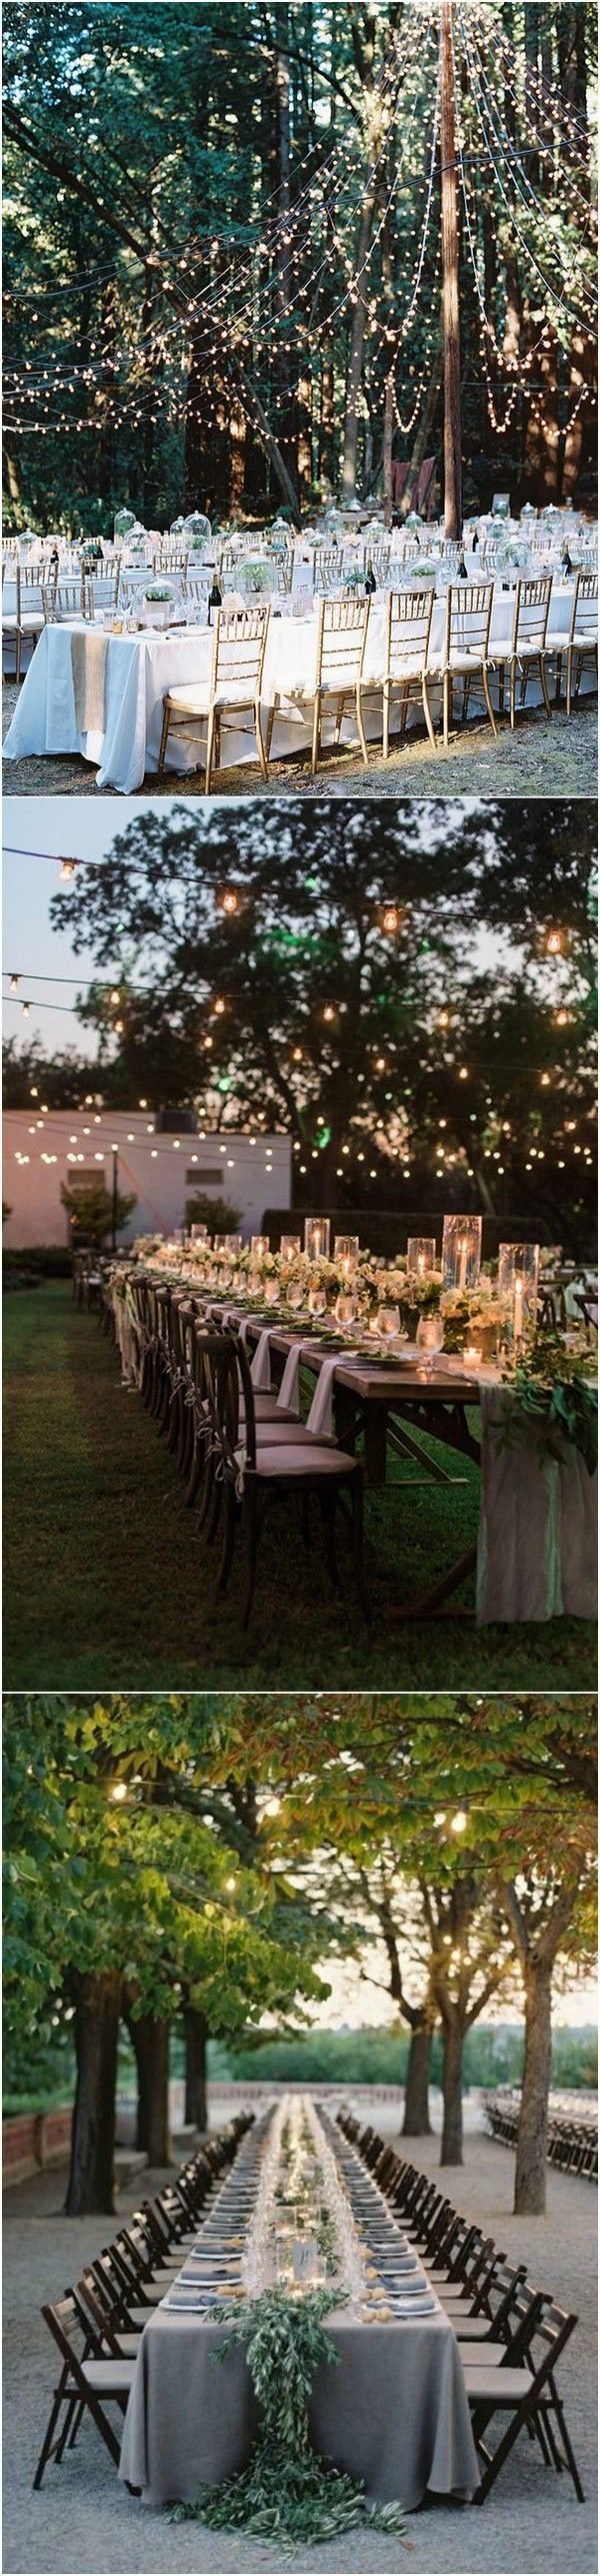 1920's themed wedding decorations november 2018 Top  Whimsical Outdoor Wedding Reception Ideas  Page  of